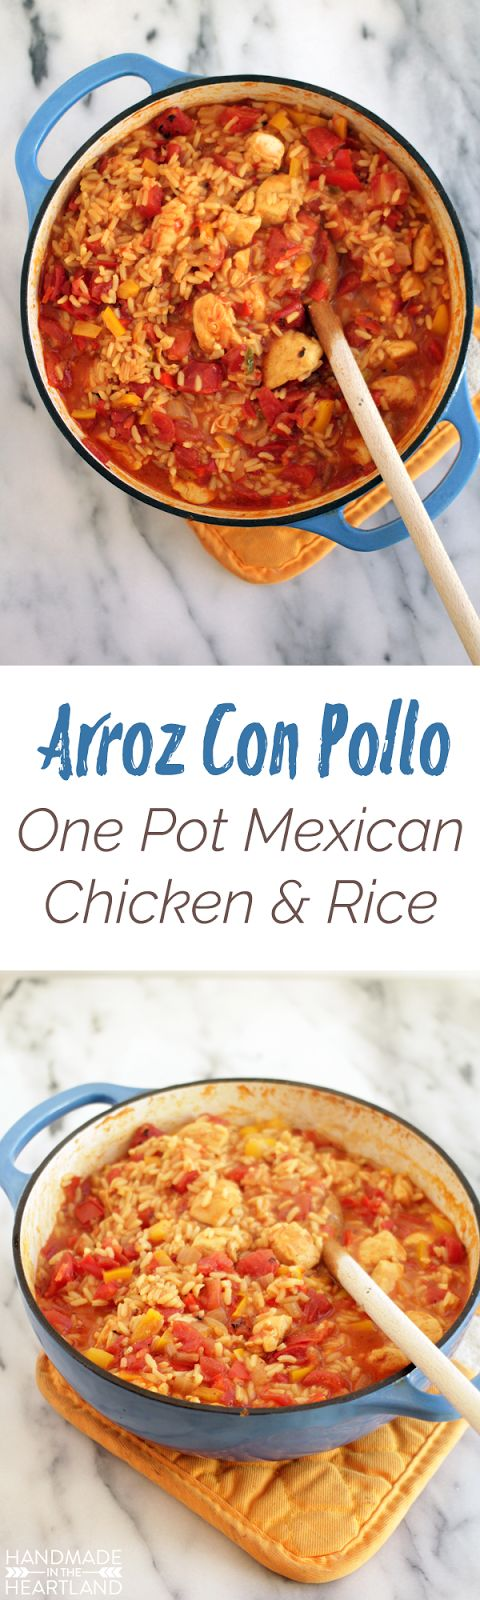 Arroz Con Pollo, One Pot Mexican Chicken & Rice Recipe #YesYouCAN